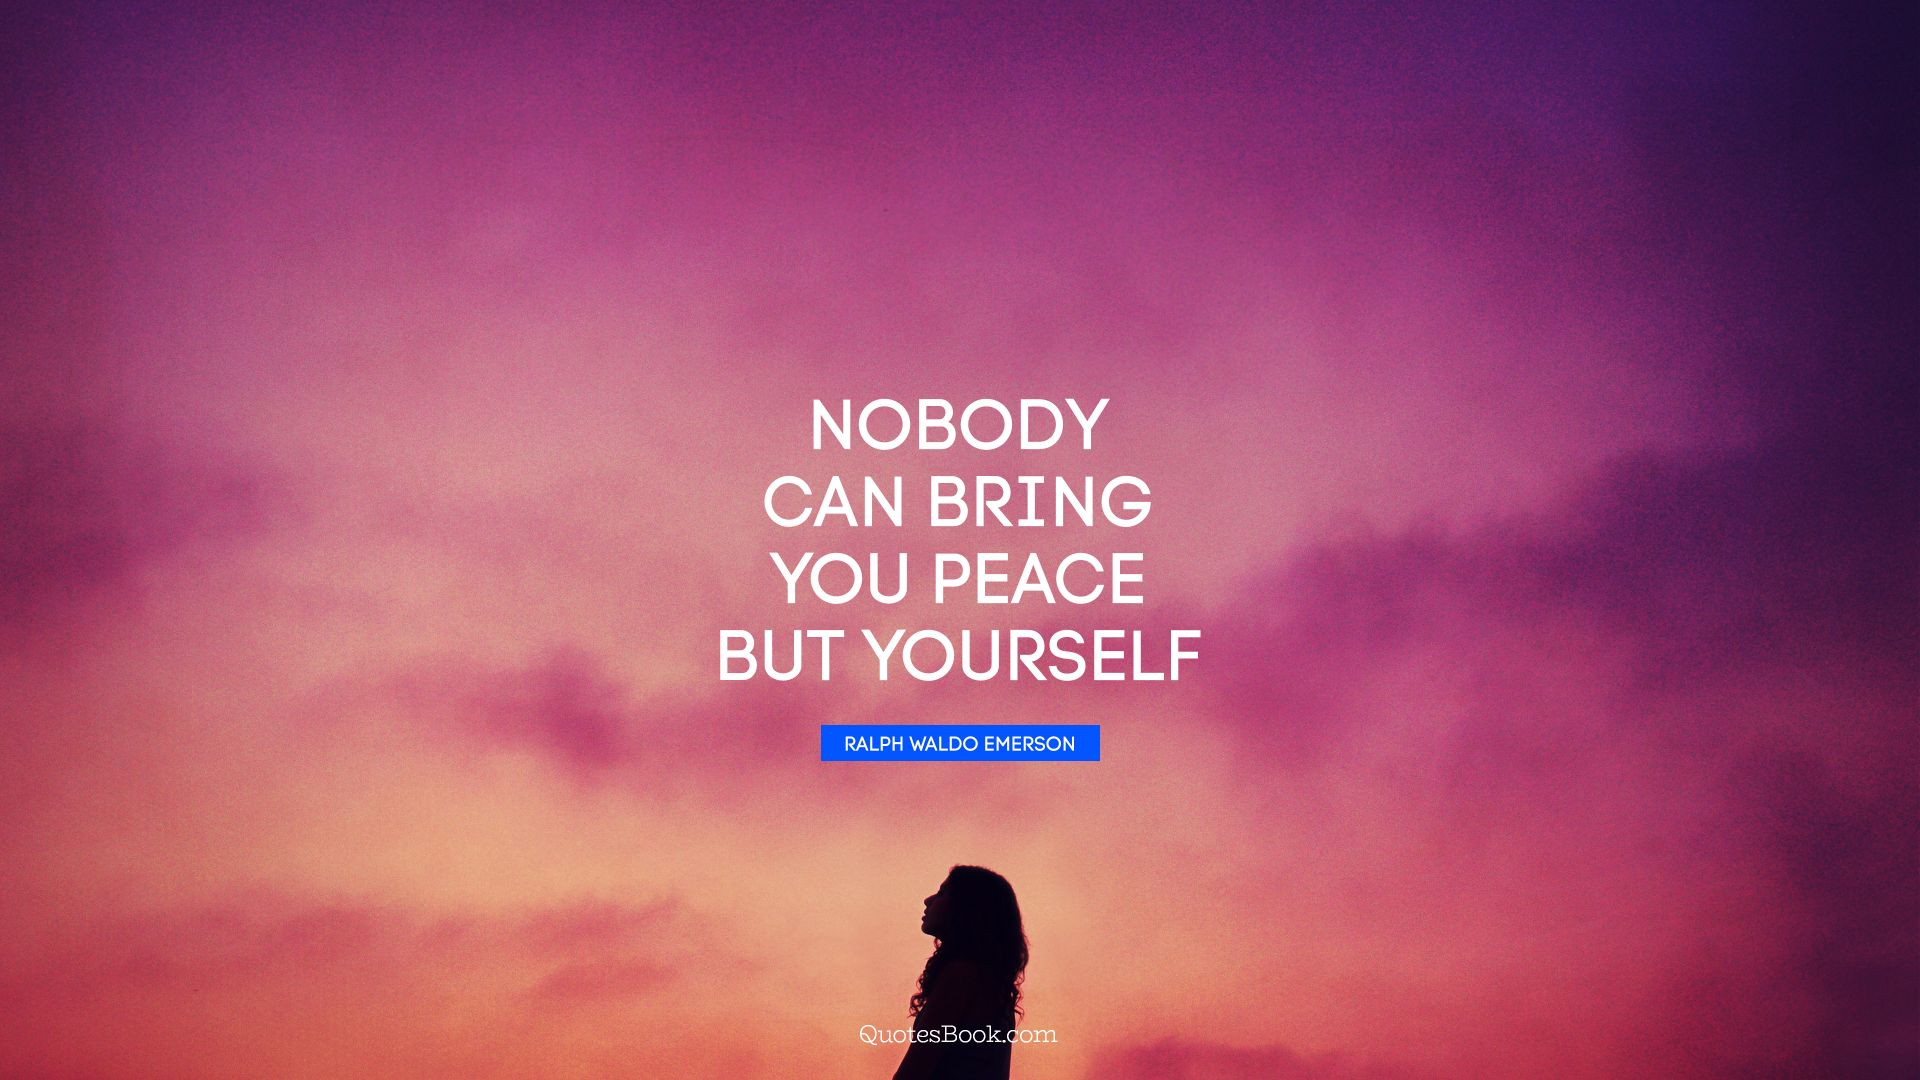 Nobody can bring you peace but yourself. - Quote by Ralph Waldo Emerson